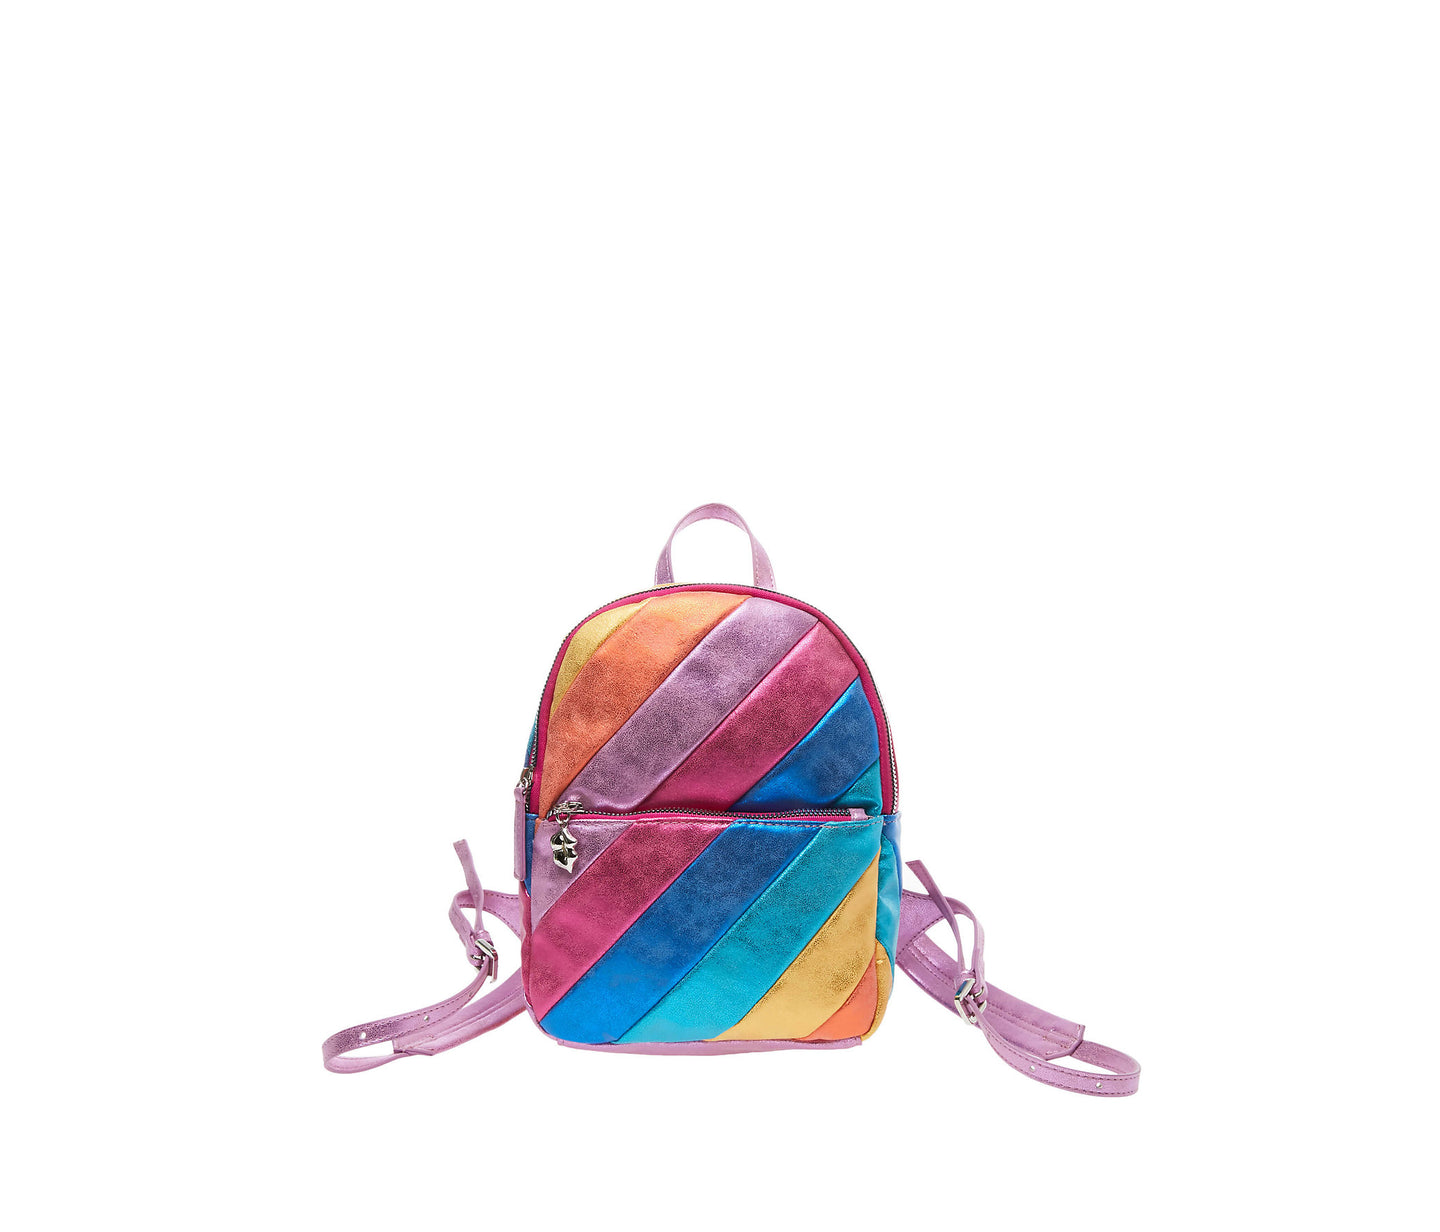 STRIPE HYPE SMALL BACKPACK MULTI - HANDBAGS - Betsey Johnson